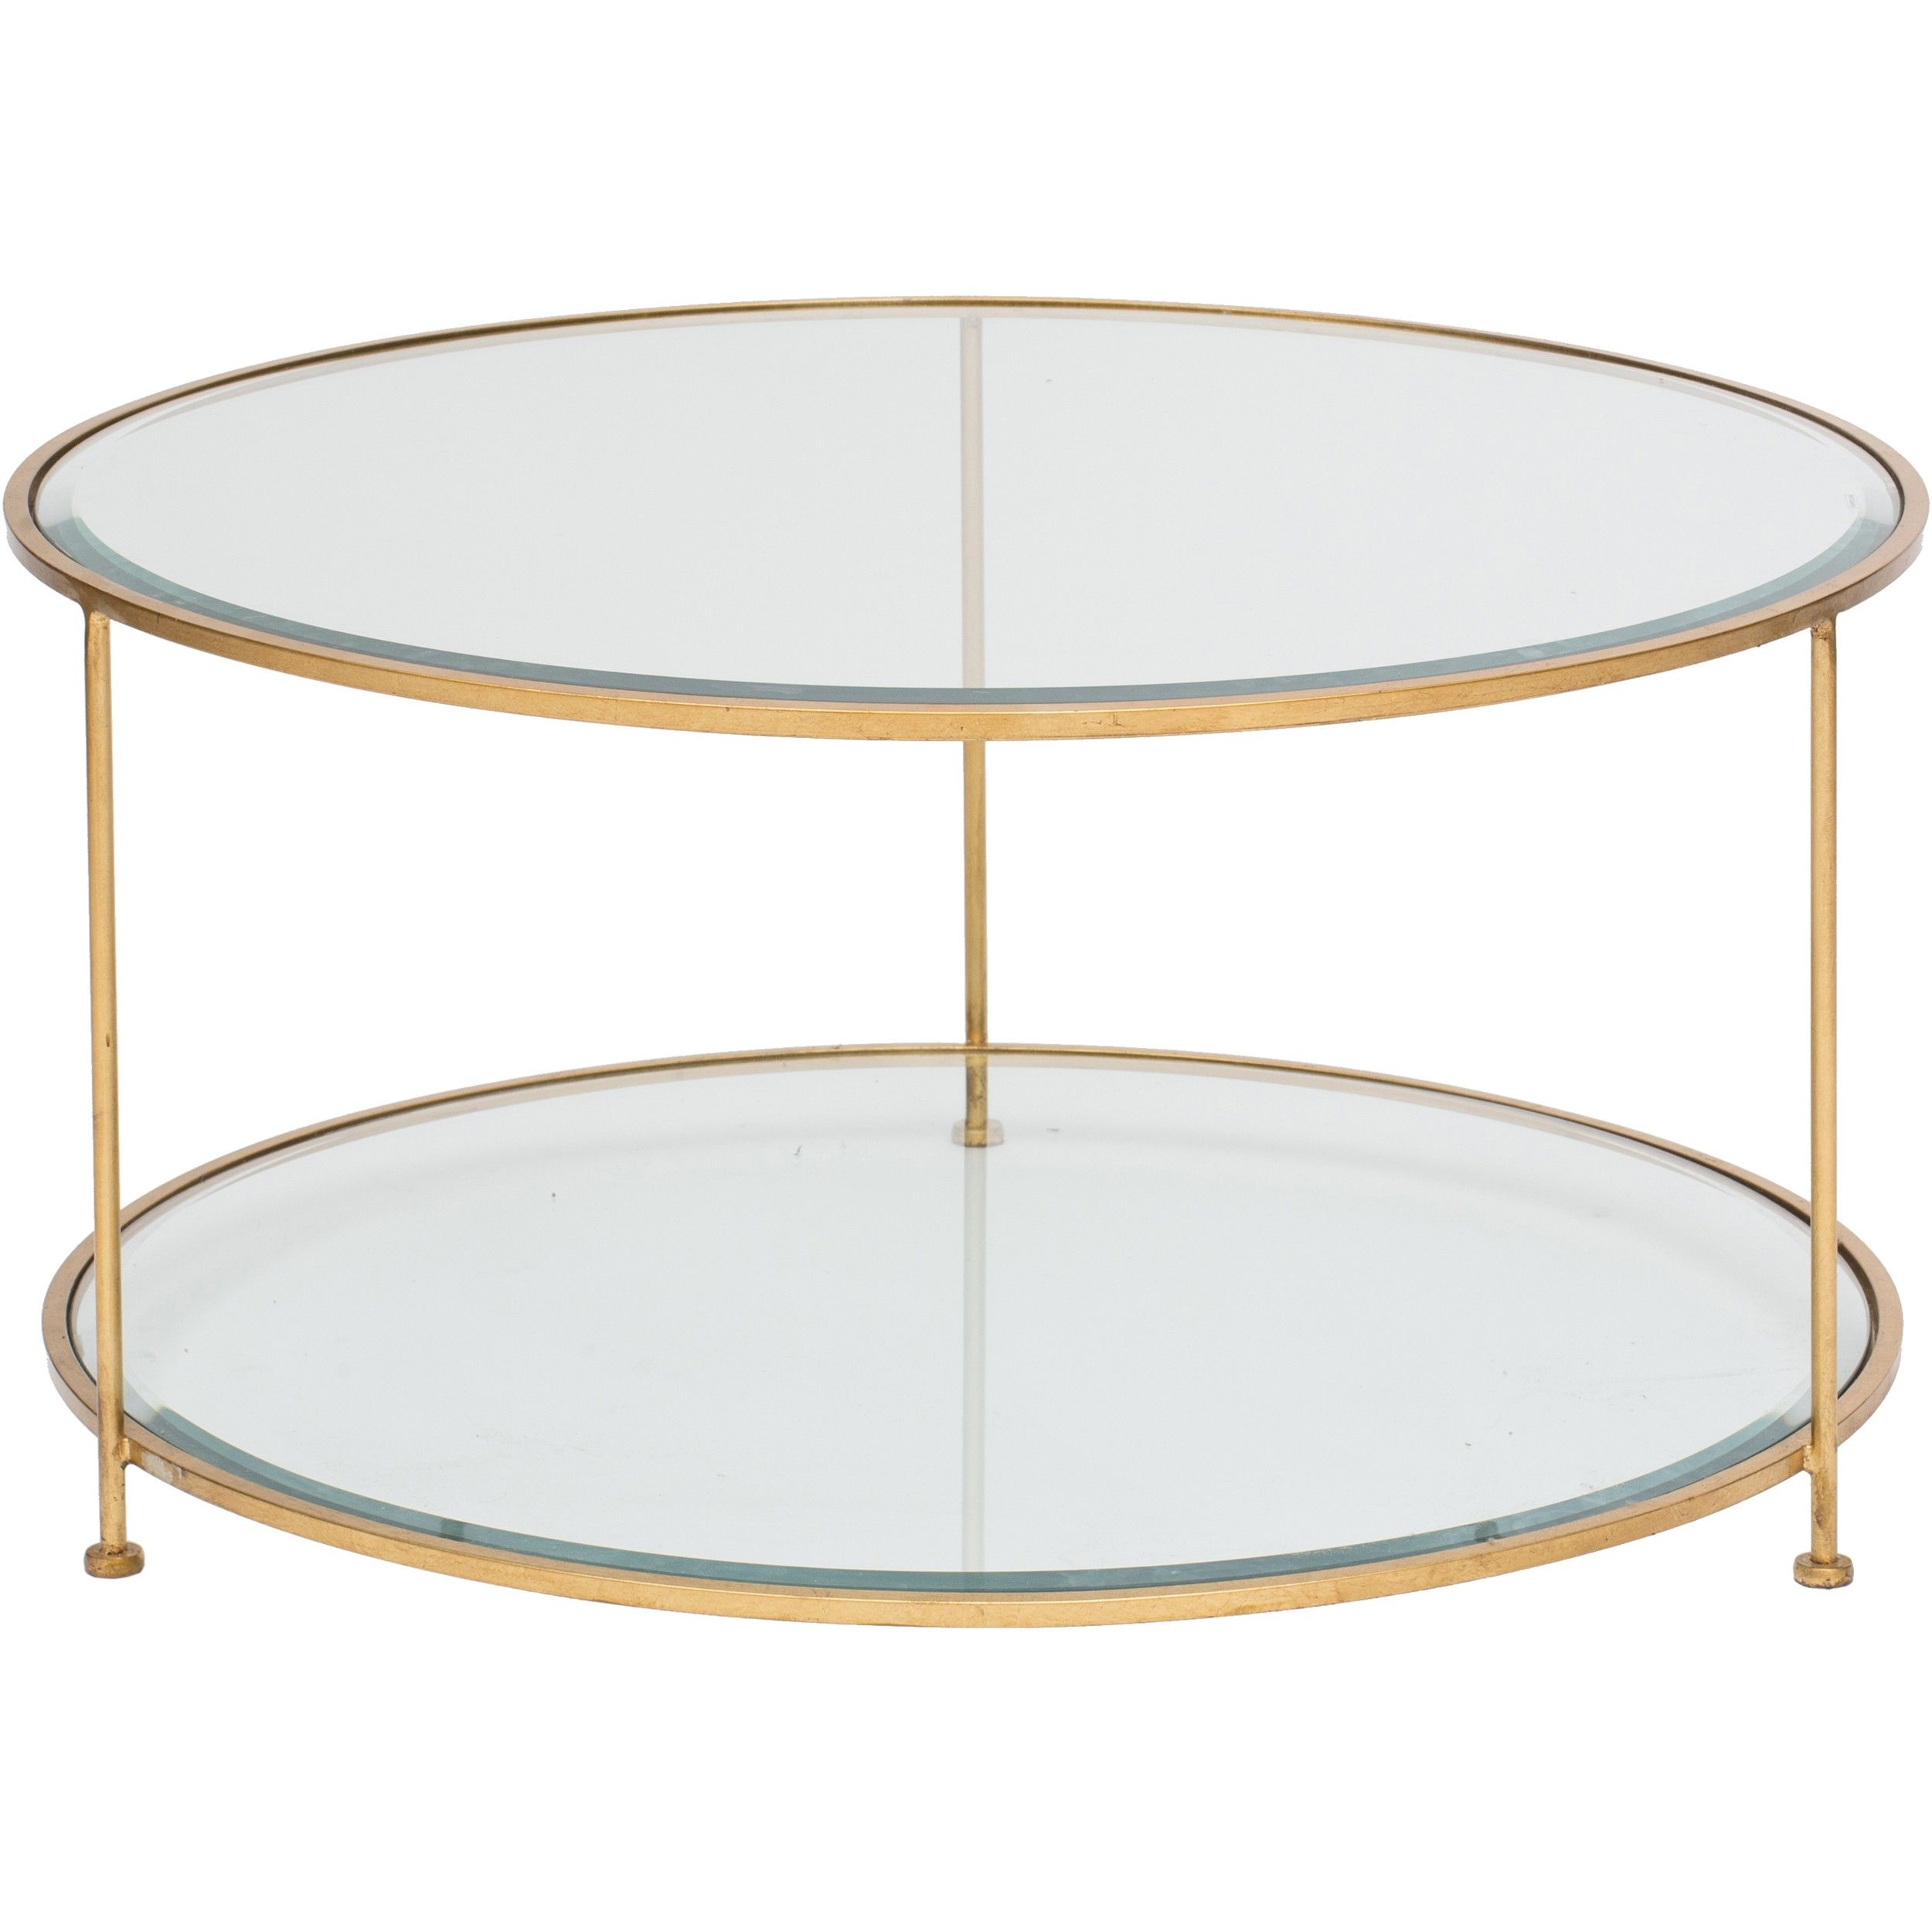 rollo round coffee table furniture accent tables gold wall lights metal storage cocktail linens big lots ashley chicago verizon lte tablet pottery barn centerpiece stone end